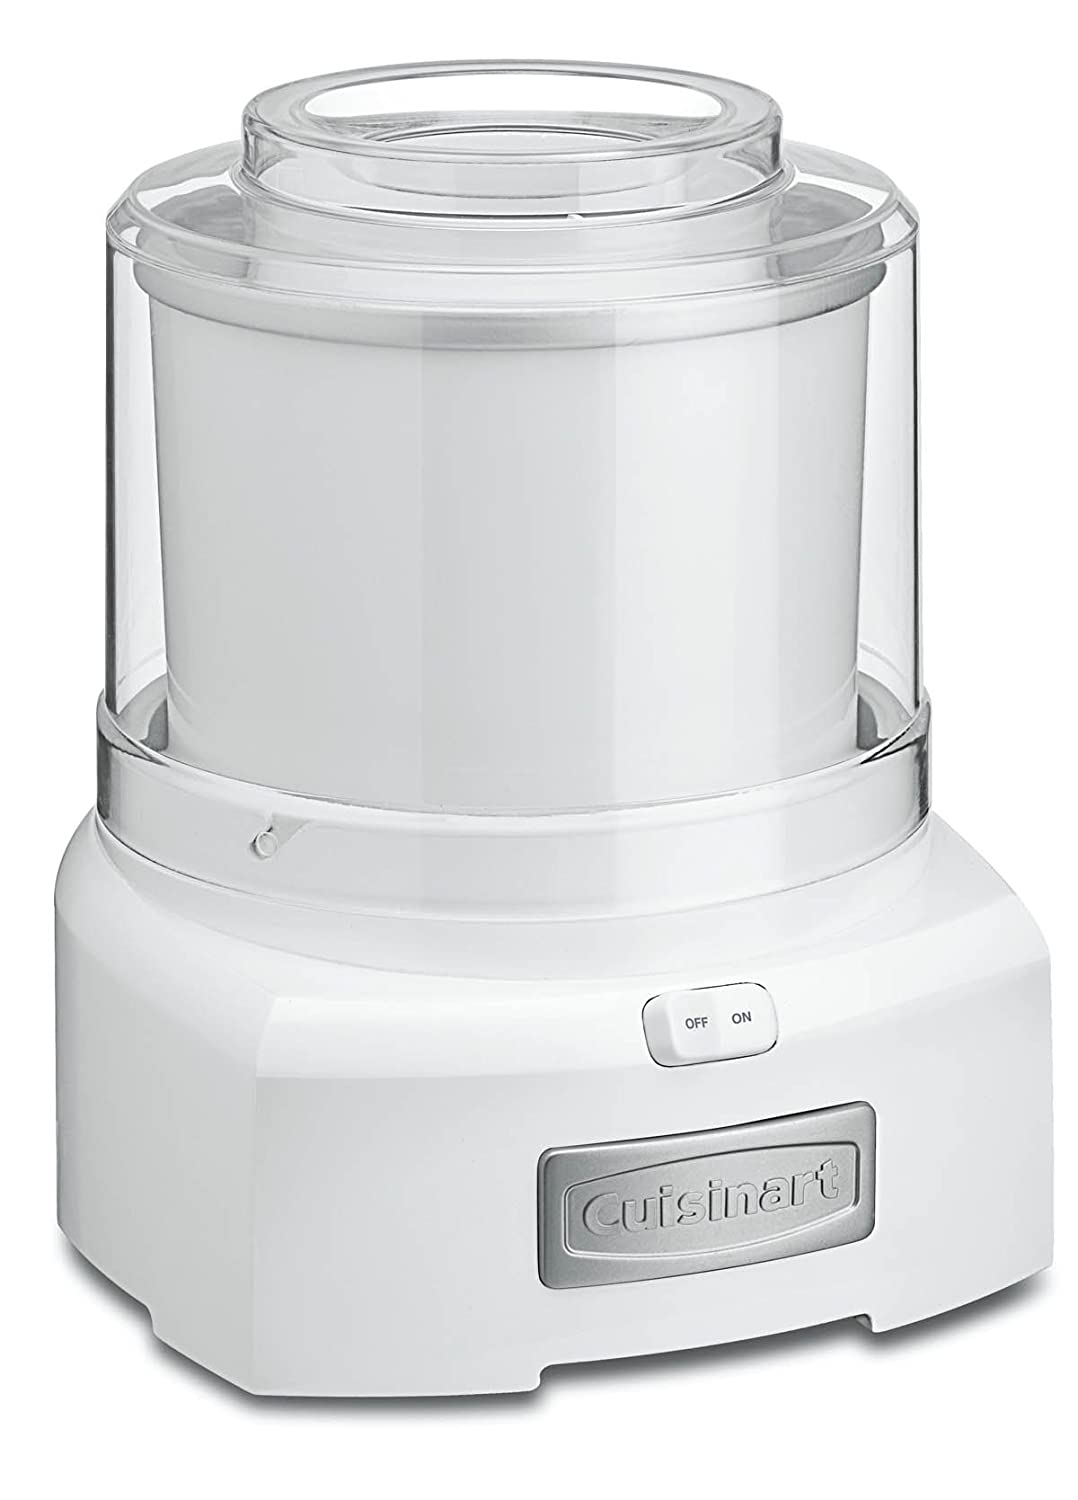 Cuisinart ICE-21 1.5 Quart Frozen Yogurt-Ice Cream Maker  REVIEW